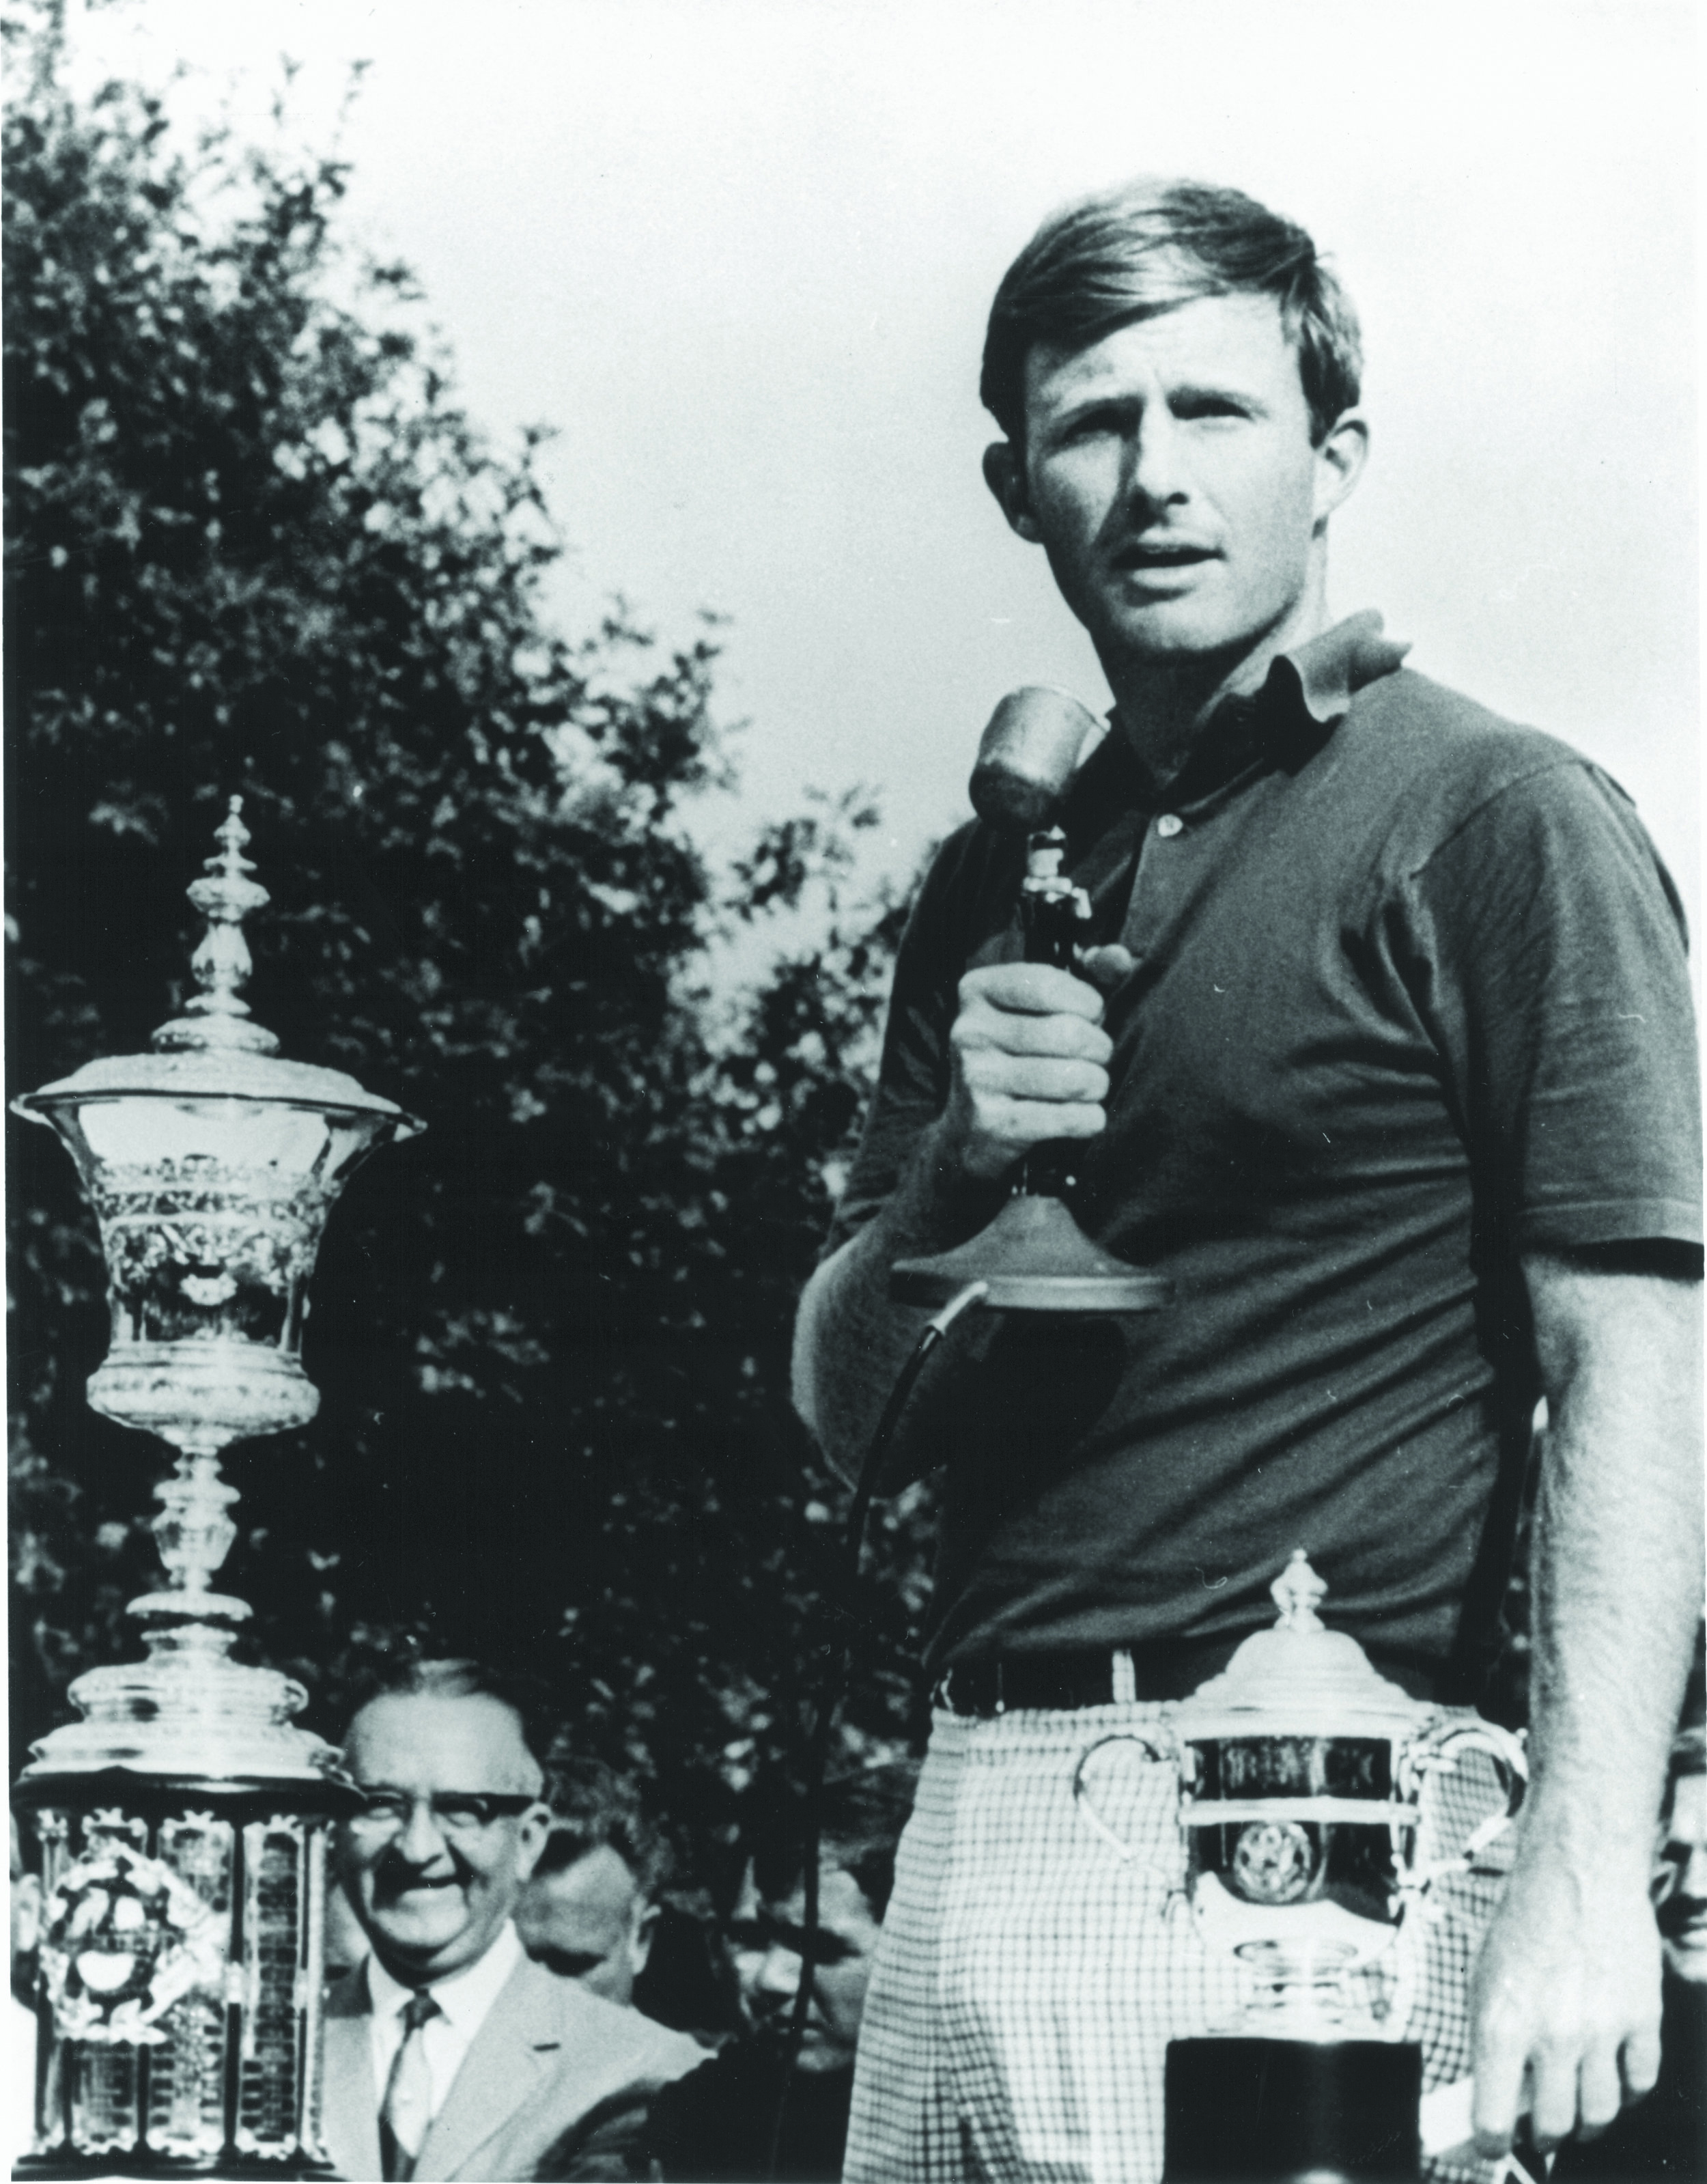 Vinny Giles won the 1972 U.S. Amateur at Charlotte, the first of four USGA championships held at the club.